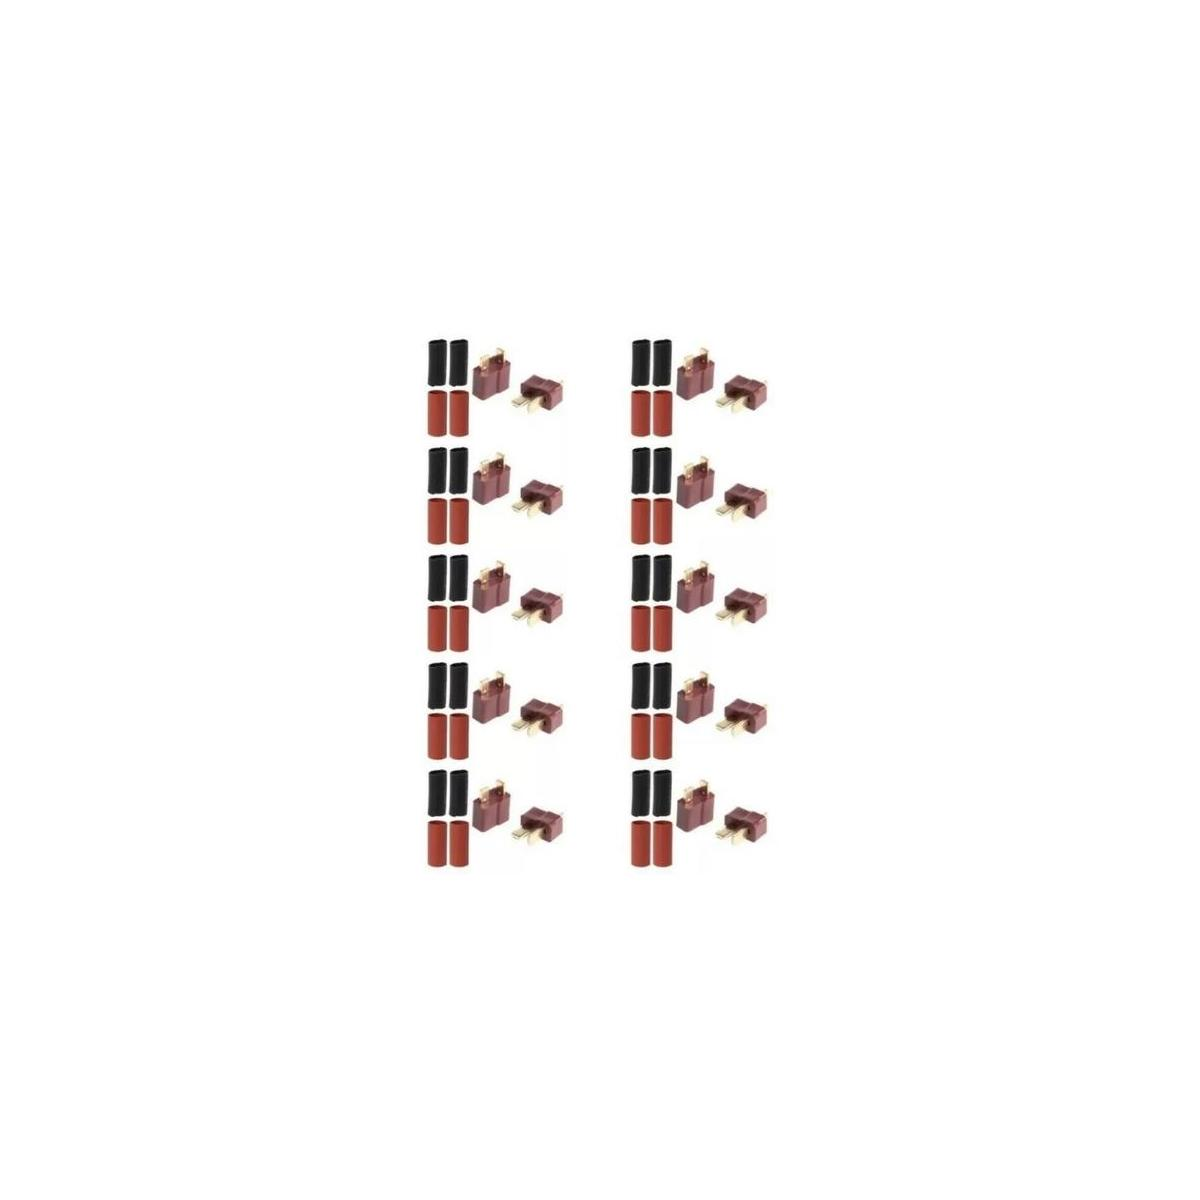 10 Pairs Ultra T-Plug Connectors Deans Style Female Male Plugs